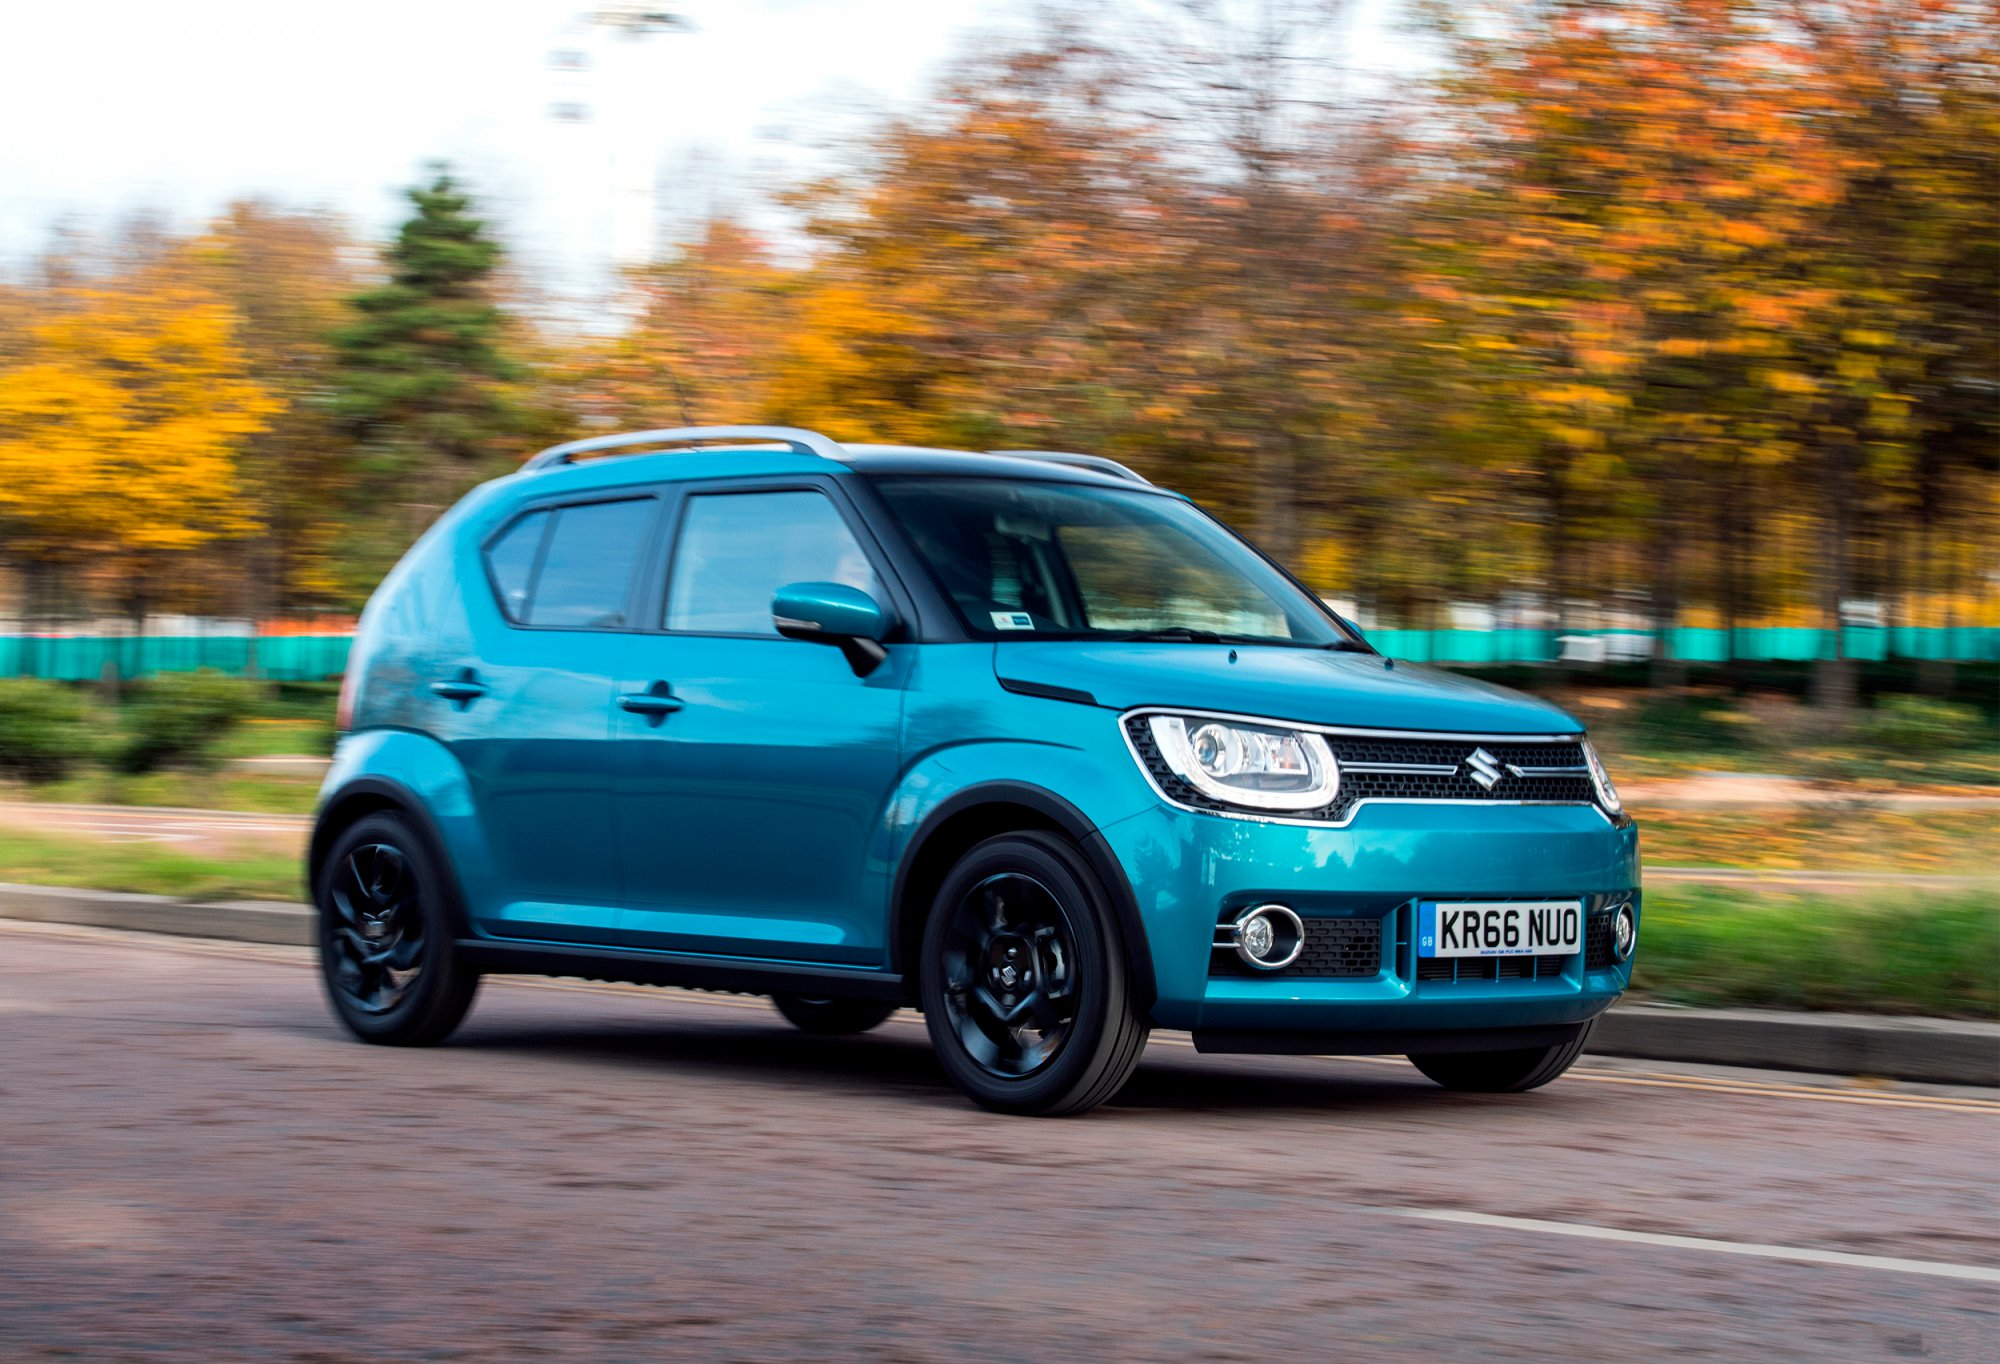 Review - 2017 Suzuki Ignis - First Impressions